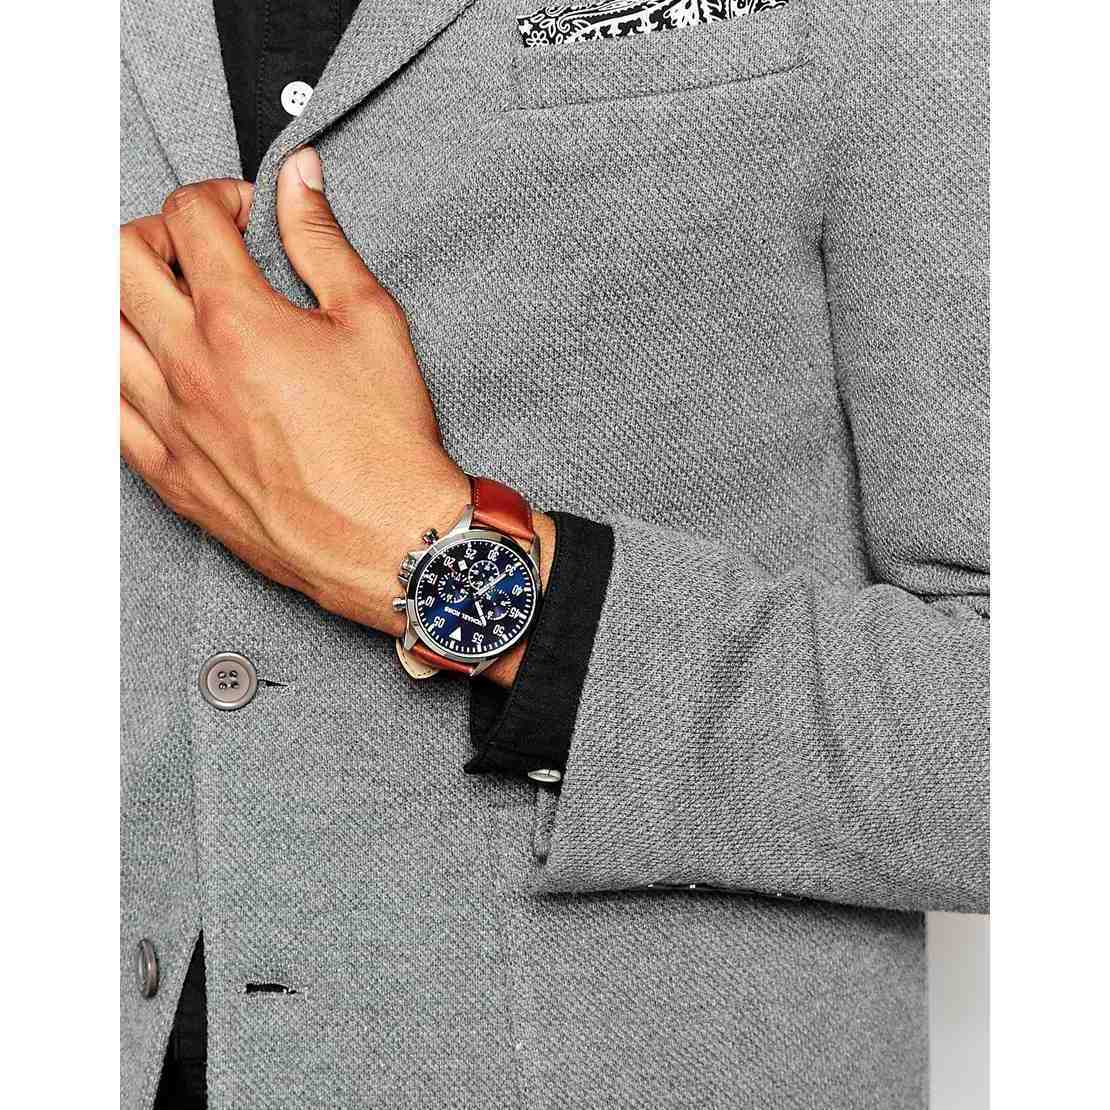 03660ac4d Shop Michael Kors Men's MK8362 'Gage' Chronograph Brown Leather Watch -  Blue - Free Shipping Today - Overstock - 10283478